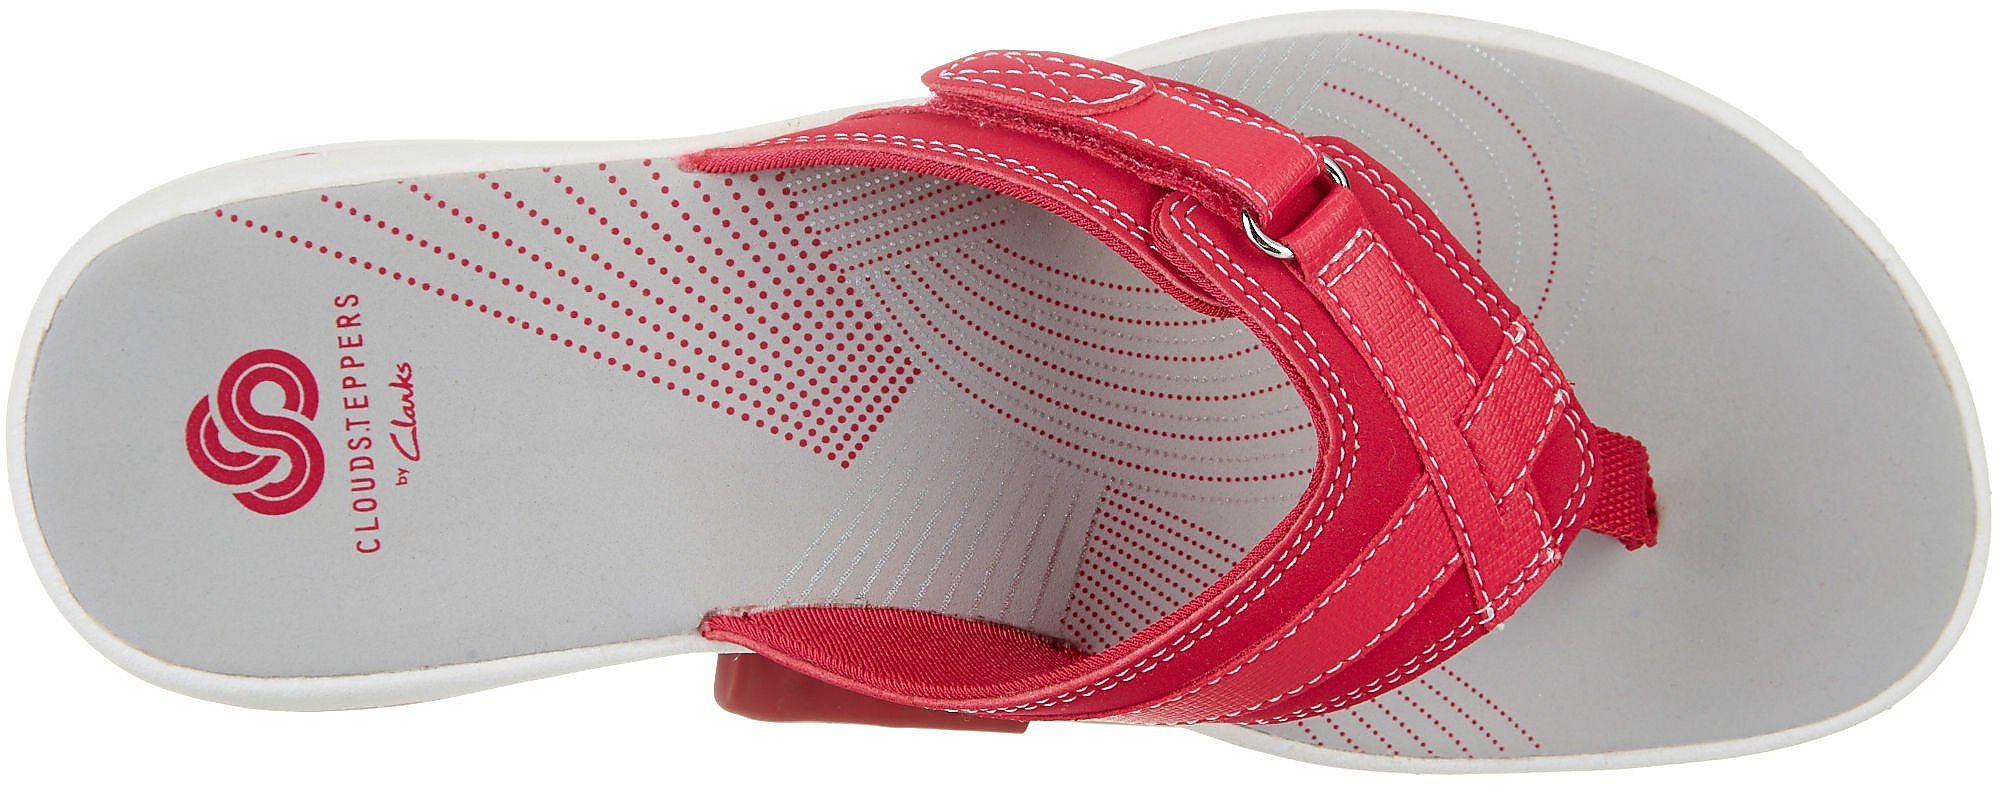 Clarks-Womens-Breeze-Sea-Flip-Flops-Comfort-Summer-Sandals thumbnail 27